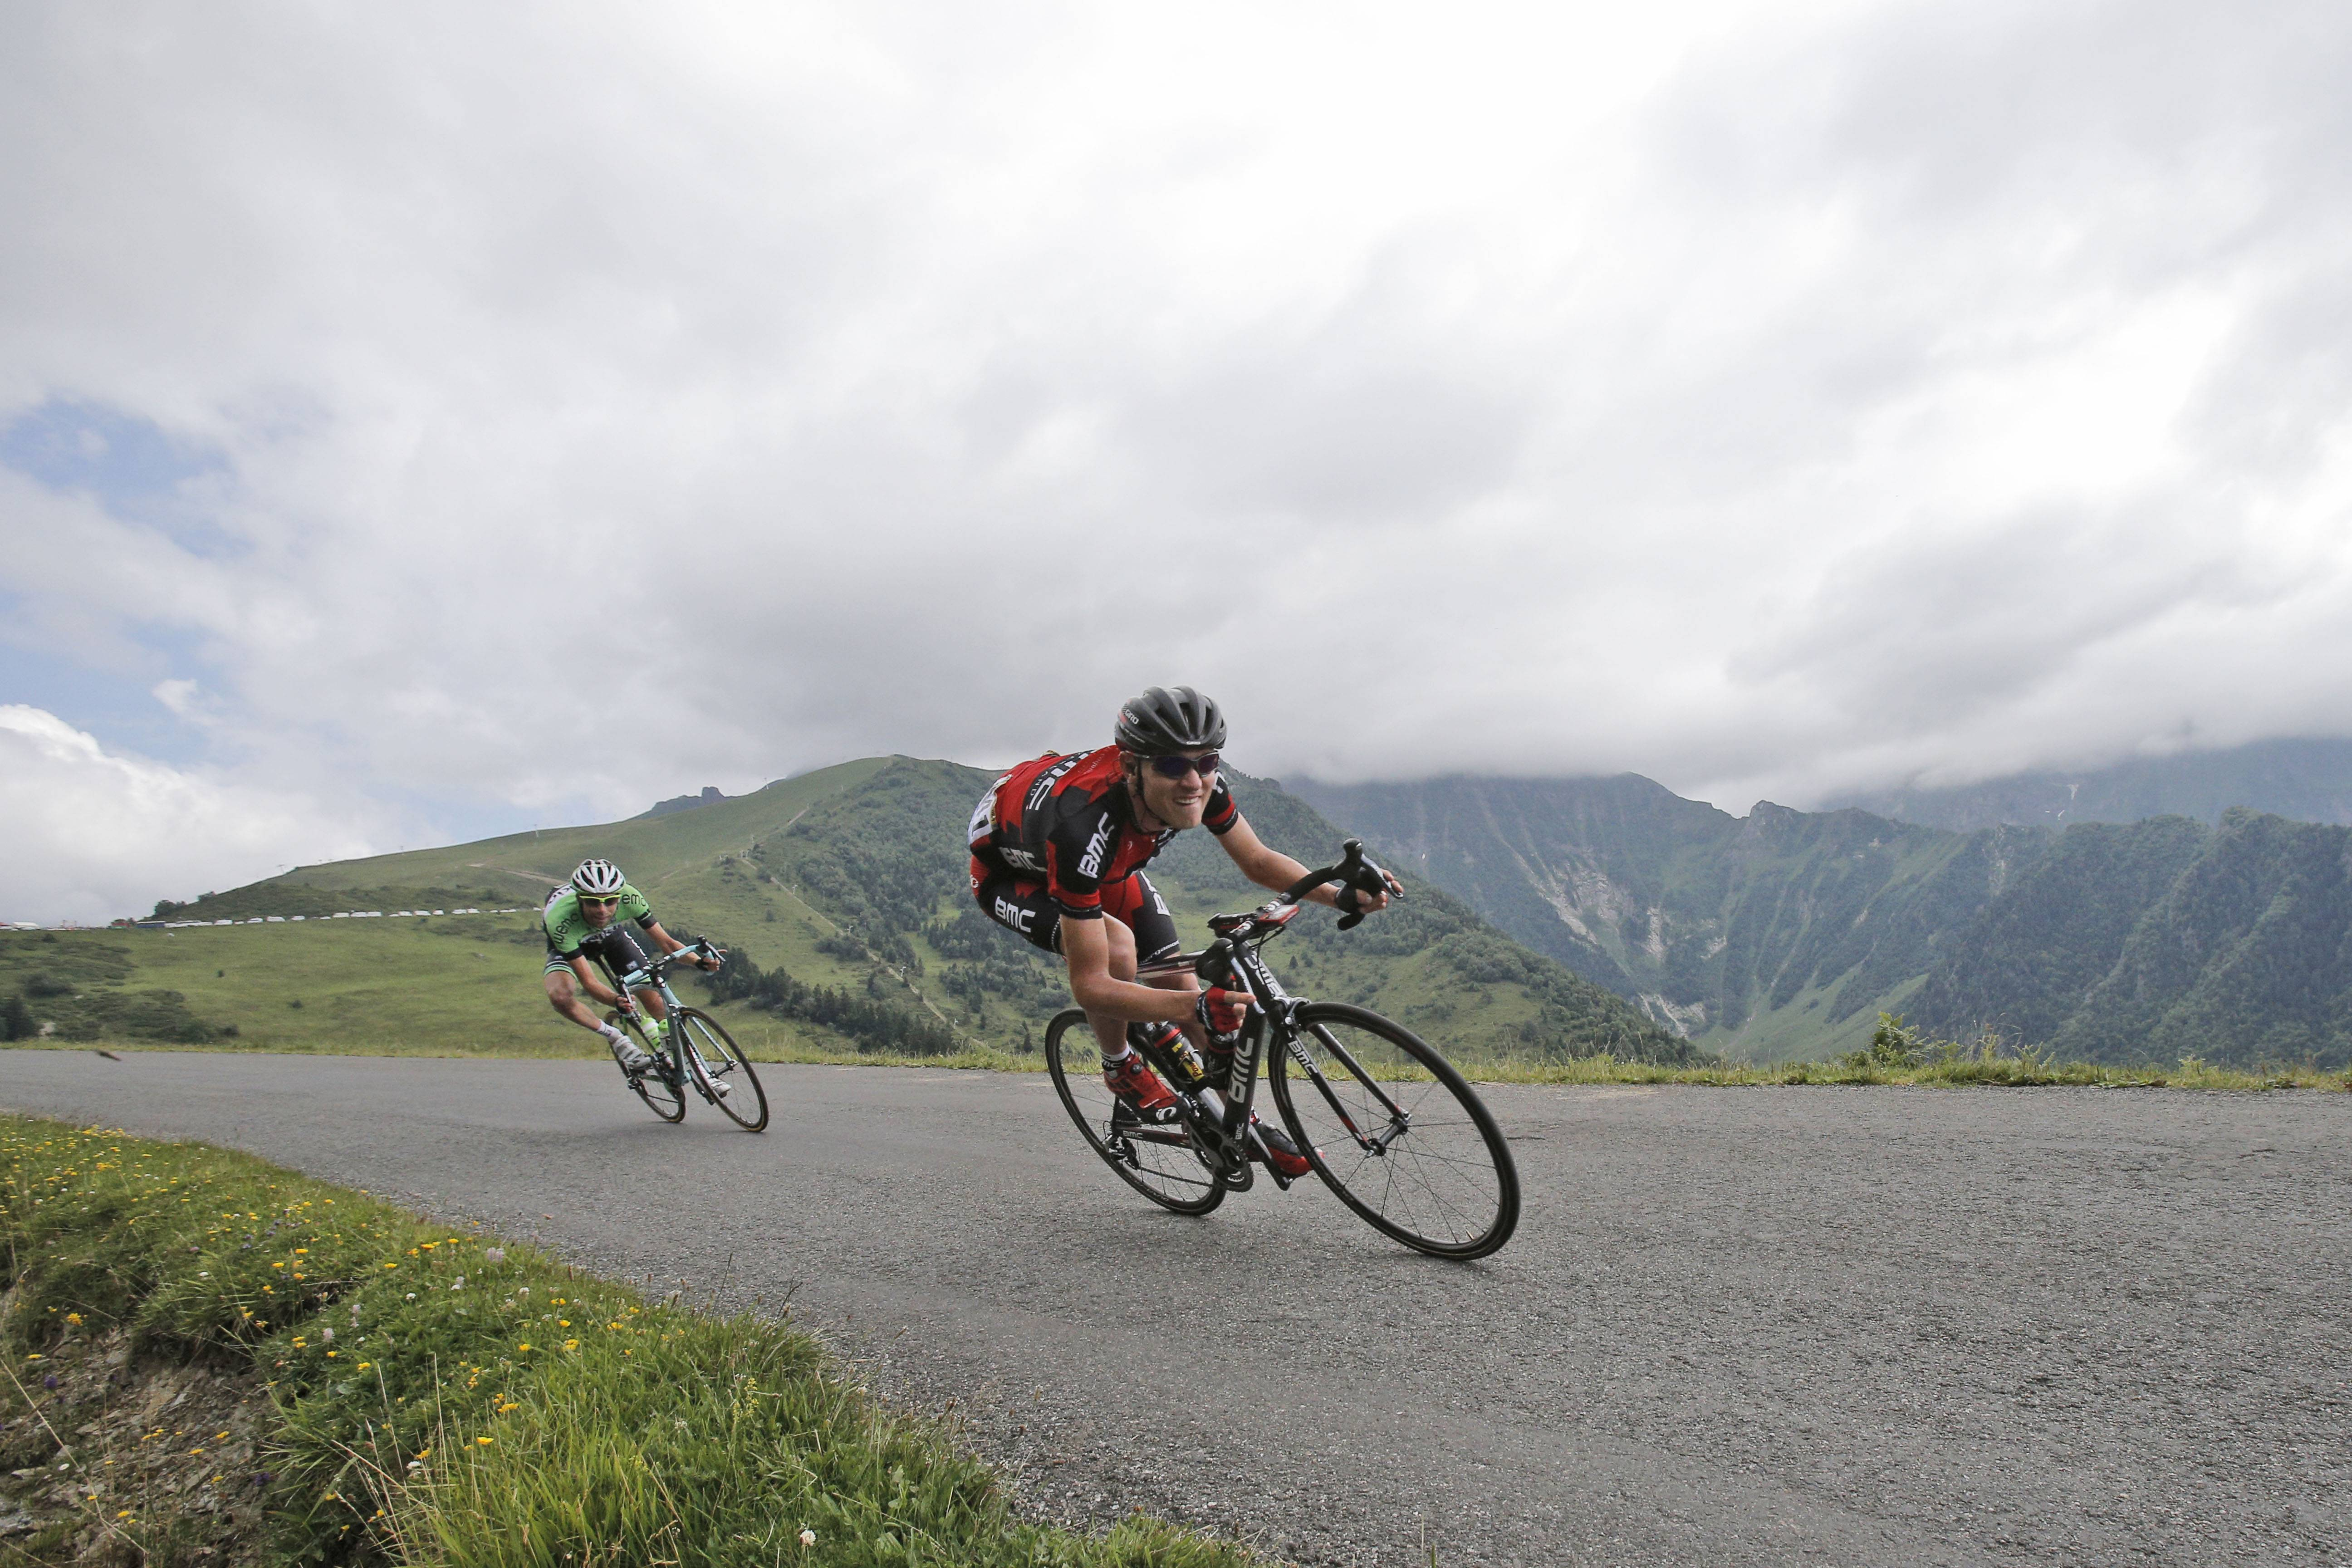 Tejay van Garderen of the U.S., right, and Netherlands' Laurens ten Dam, left, speed down Val Louron Azet pass during the seventeenth stage of the Tour de France cycling race over 124.5 kilometers (77.4 miles) with start in Saint-Gaudens and finish in Saint-Lary, France, Wednesday, July 23, 2014.